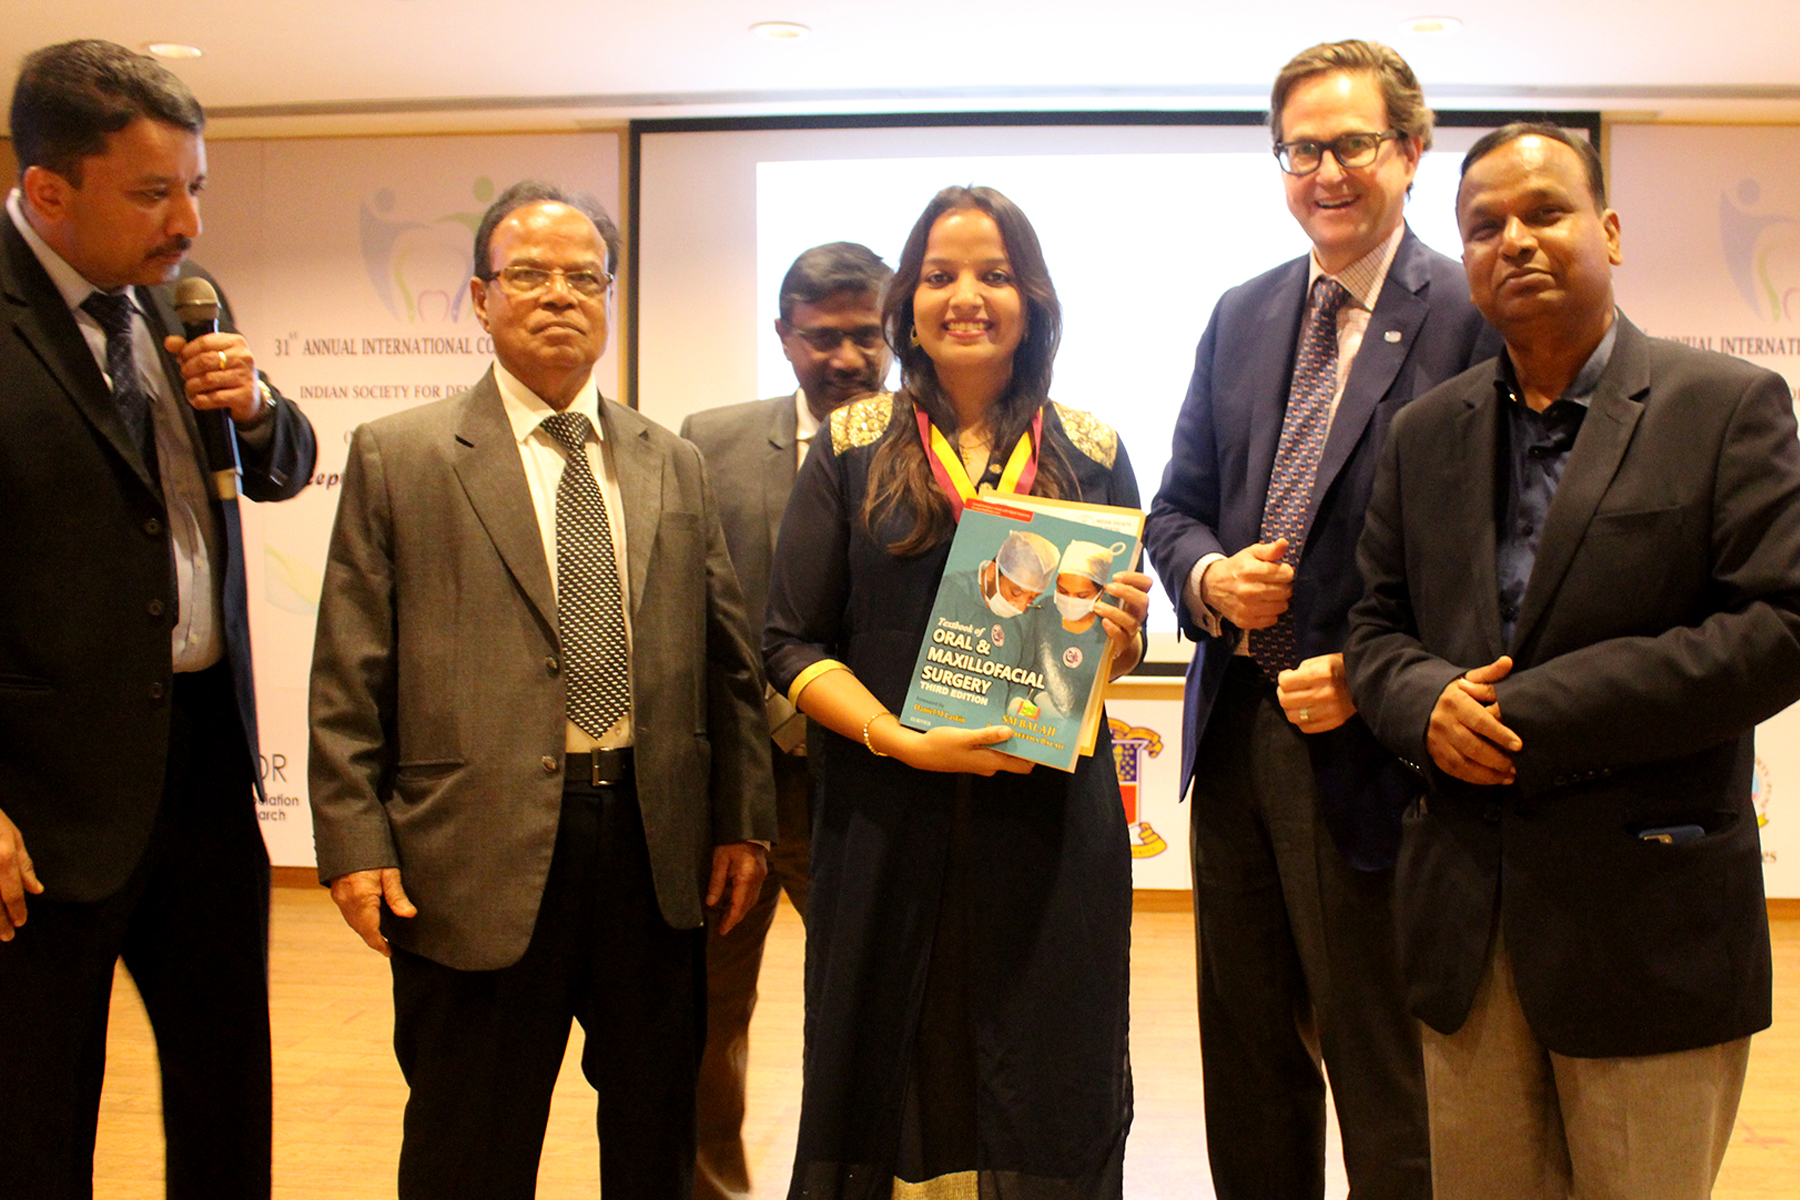 A top ranker being presented with Dr SM Balaji's Textbook of Oral and Maxillofacial Surgery